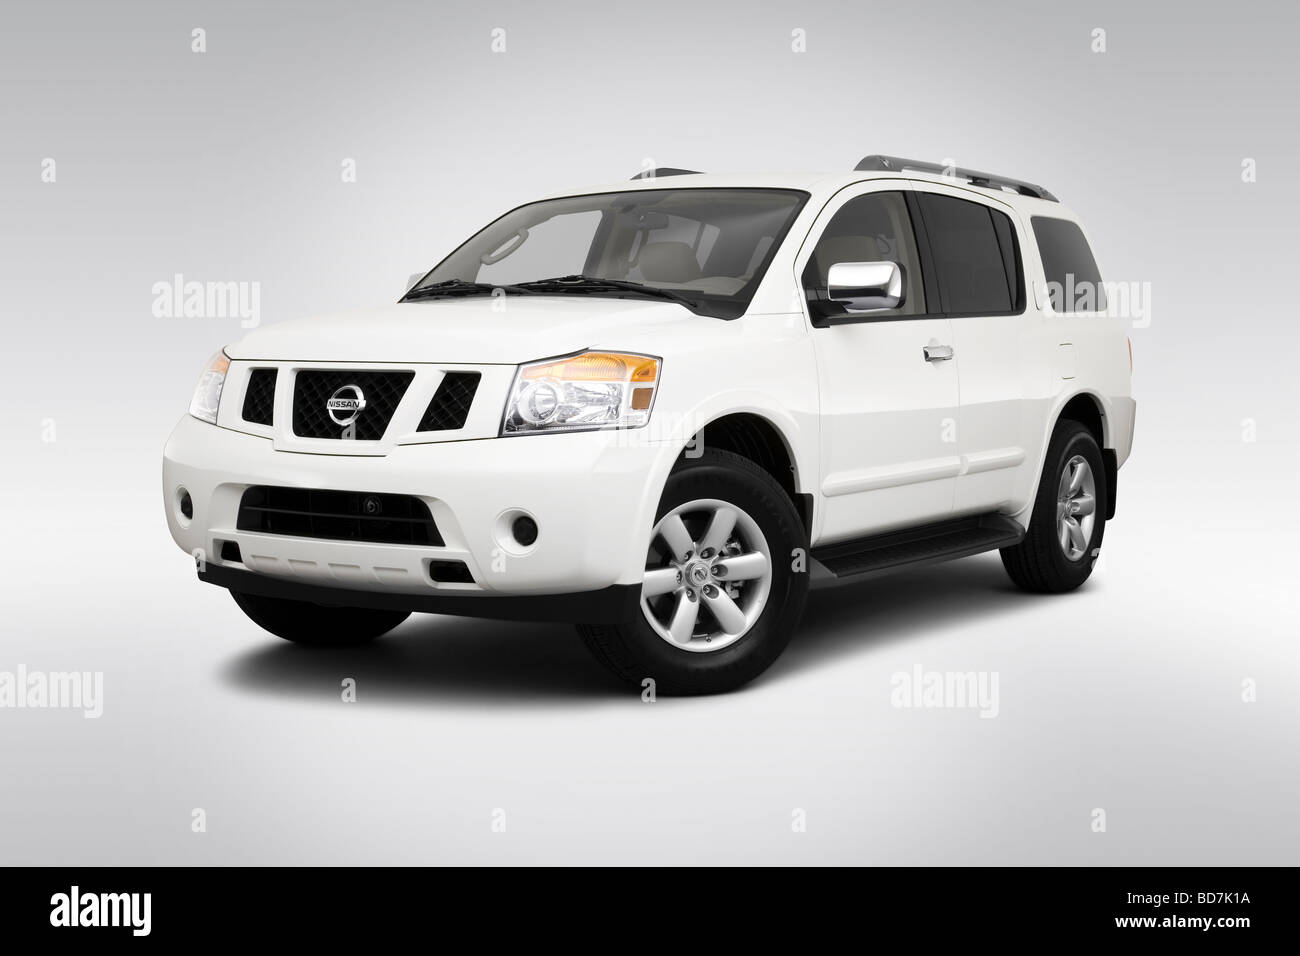 2010 nissan armada se in gray front angle view stock photo 2010 nissan armada se in gray front angle view vanachro Image collections